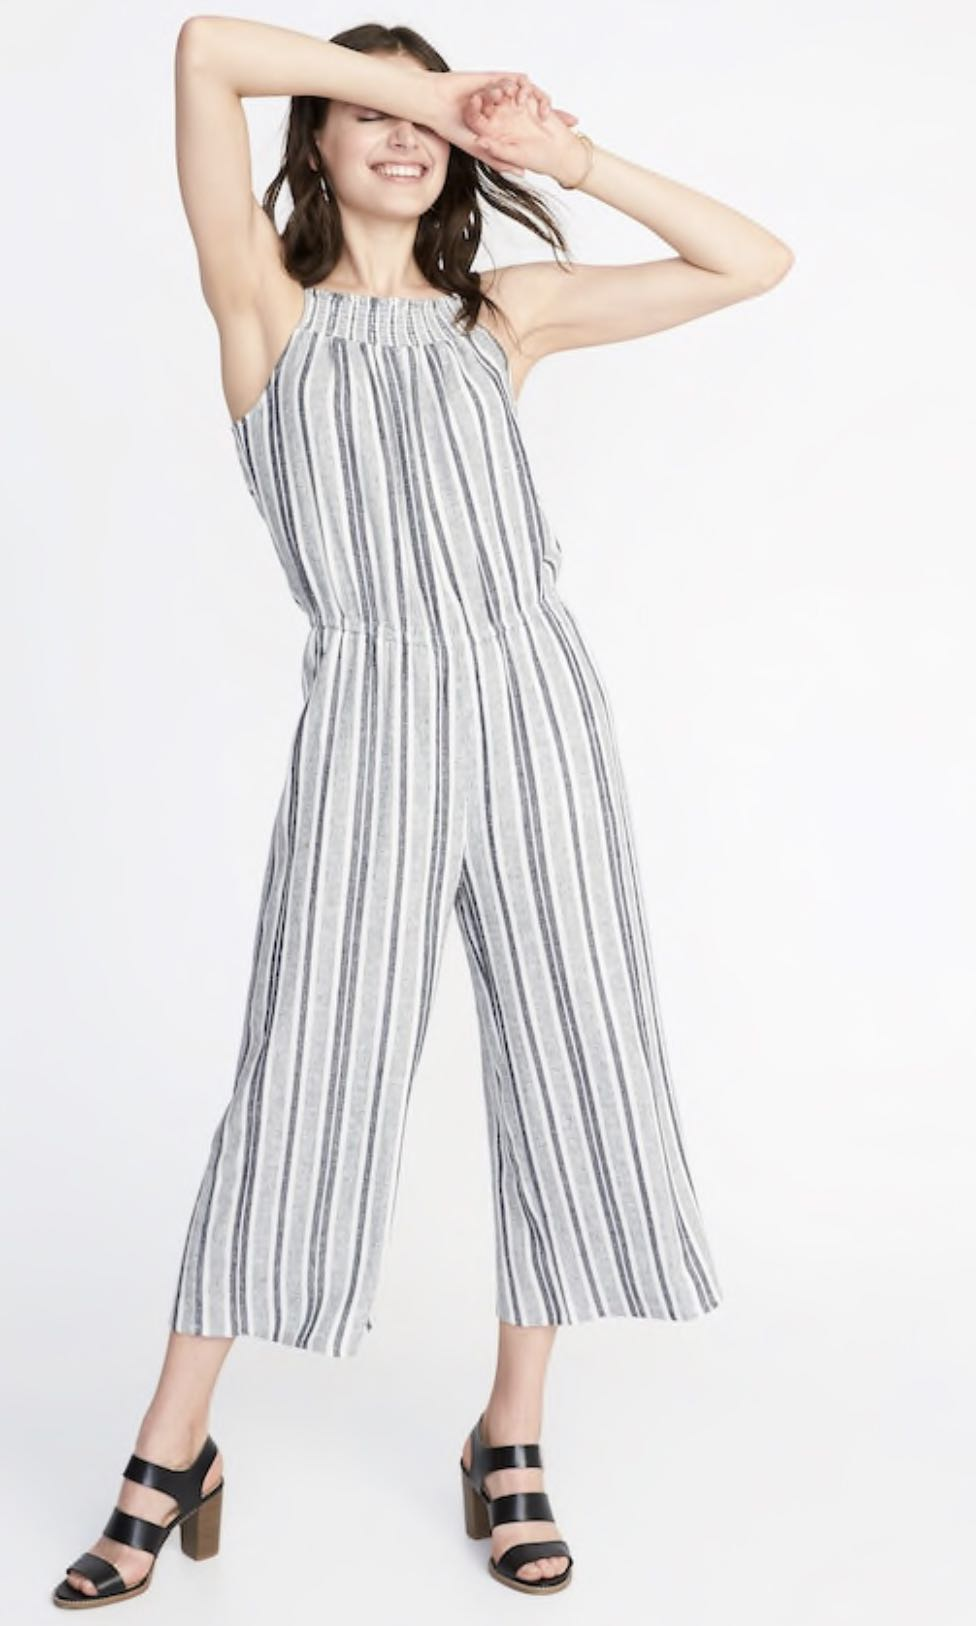 91cf7715a53 Home · Women s Fashion · Clothes · Rompers   Jumpsuits. photo photo ...